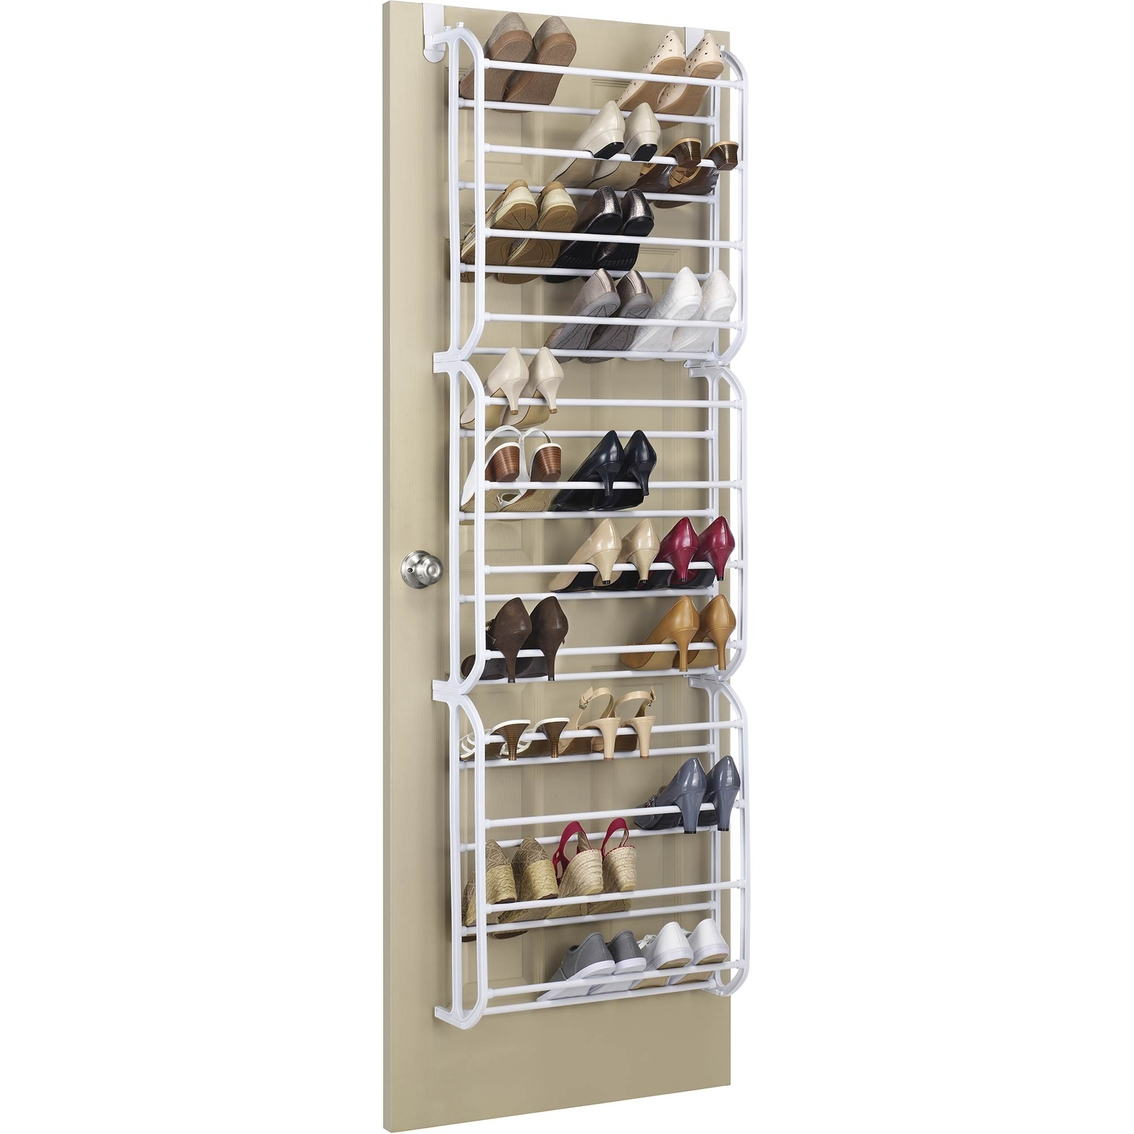 Behind Door Shoe Storage.Whitmor Over The Door Shoe Rack Closet Organization Home